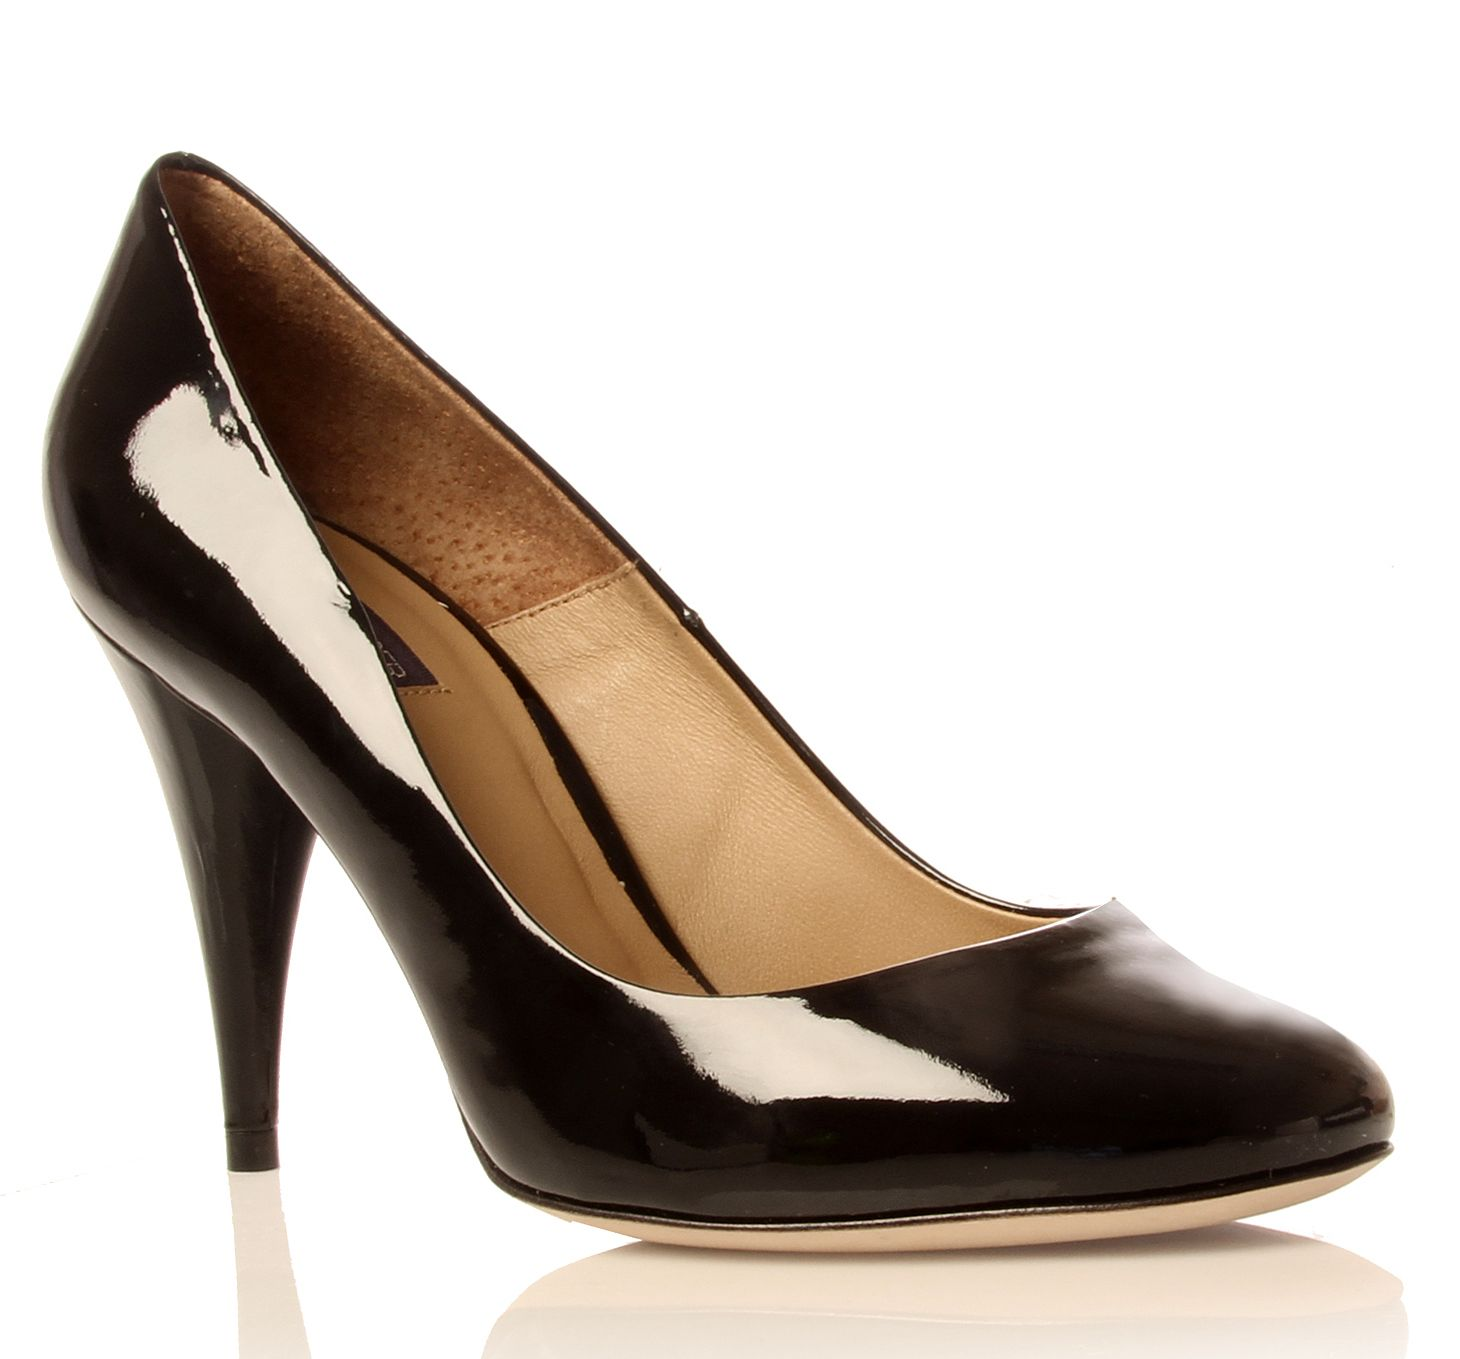 Kurt Geiger Esmeralda Court Shoes in Black